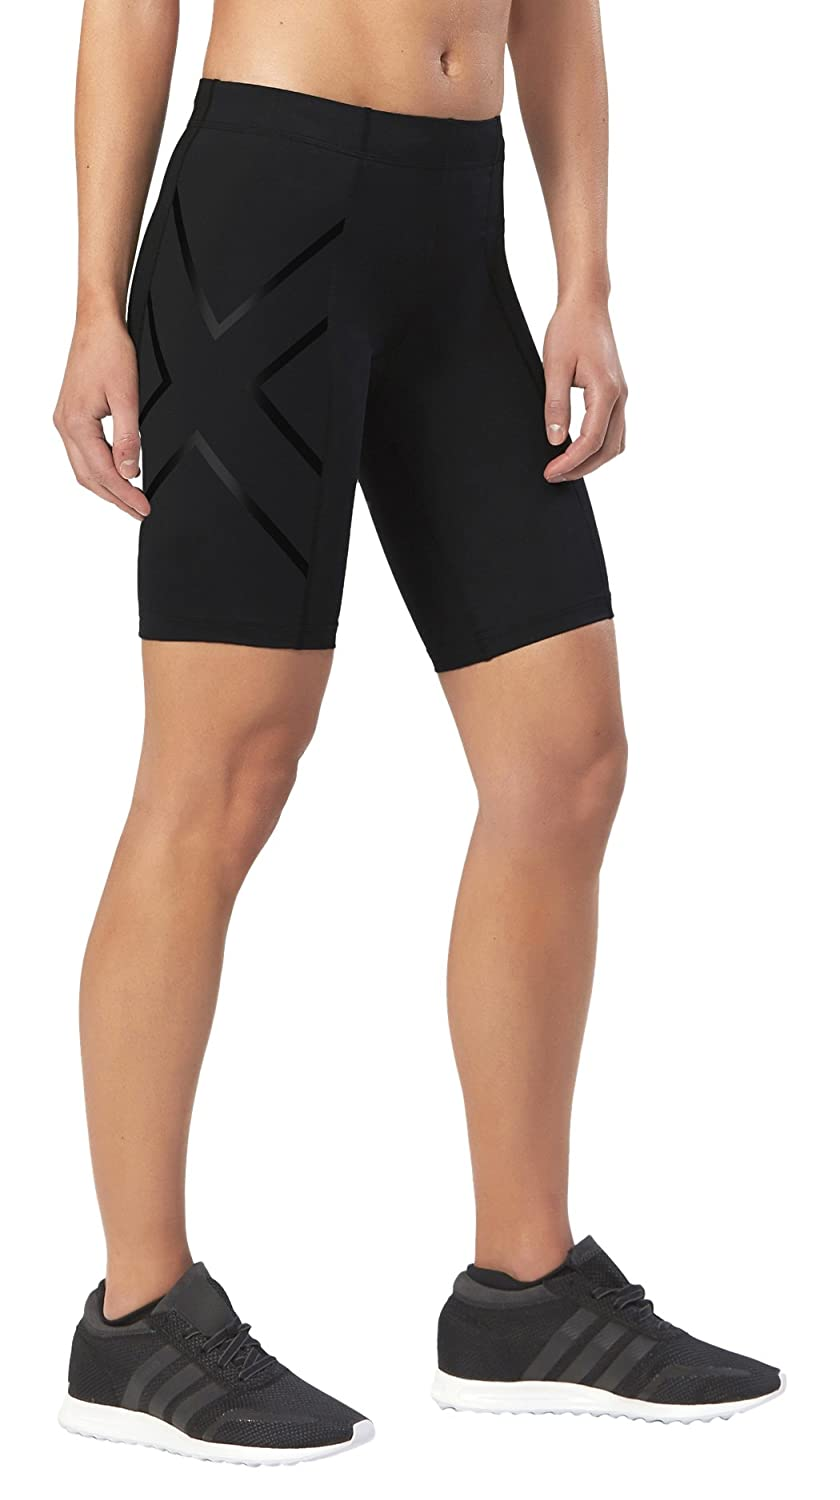 2XU Women's Core Compression Shorts 2XU Pty Ltd WA4176b-P